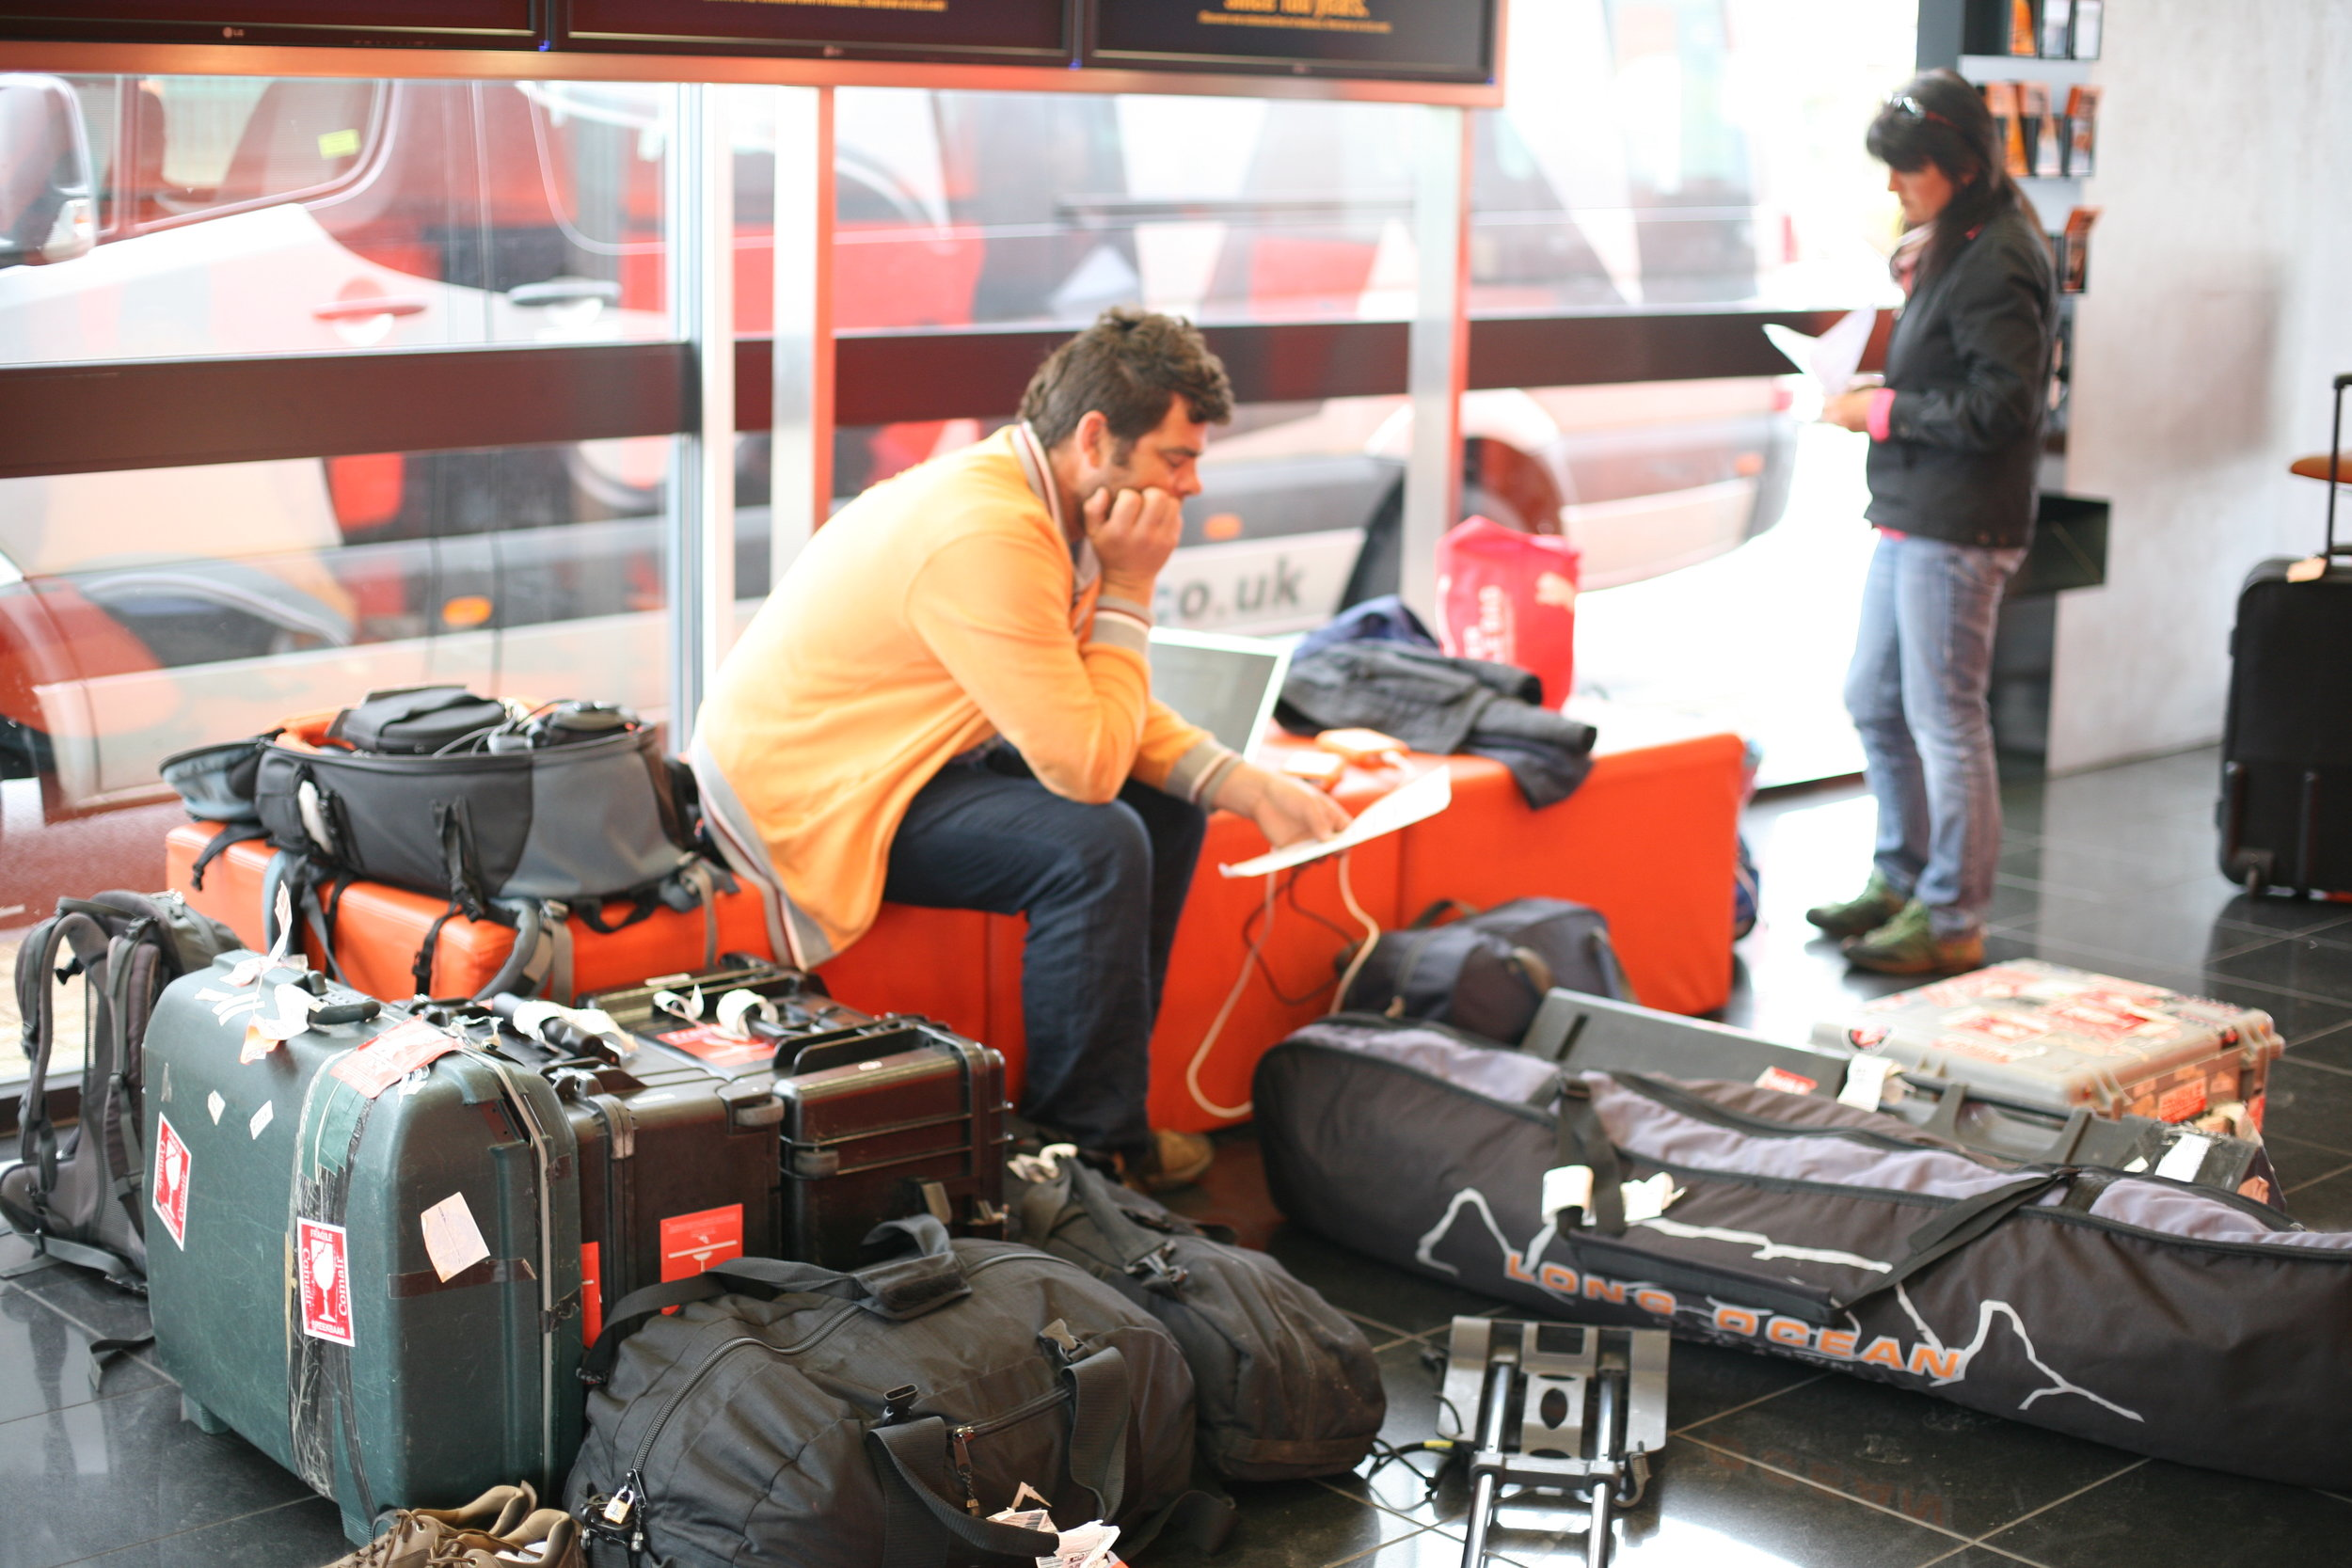 DOP Peter Rudden and I waiting for the paperwork at the hired car depot near Heathrow with gear. The surfboard bag contained tripods and dung-smeared sticks for the shoot, luckily undetected as we passed through the airport 2013.